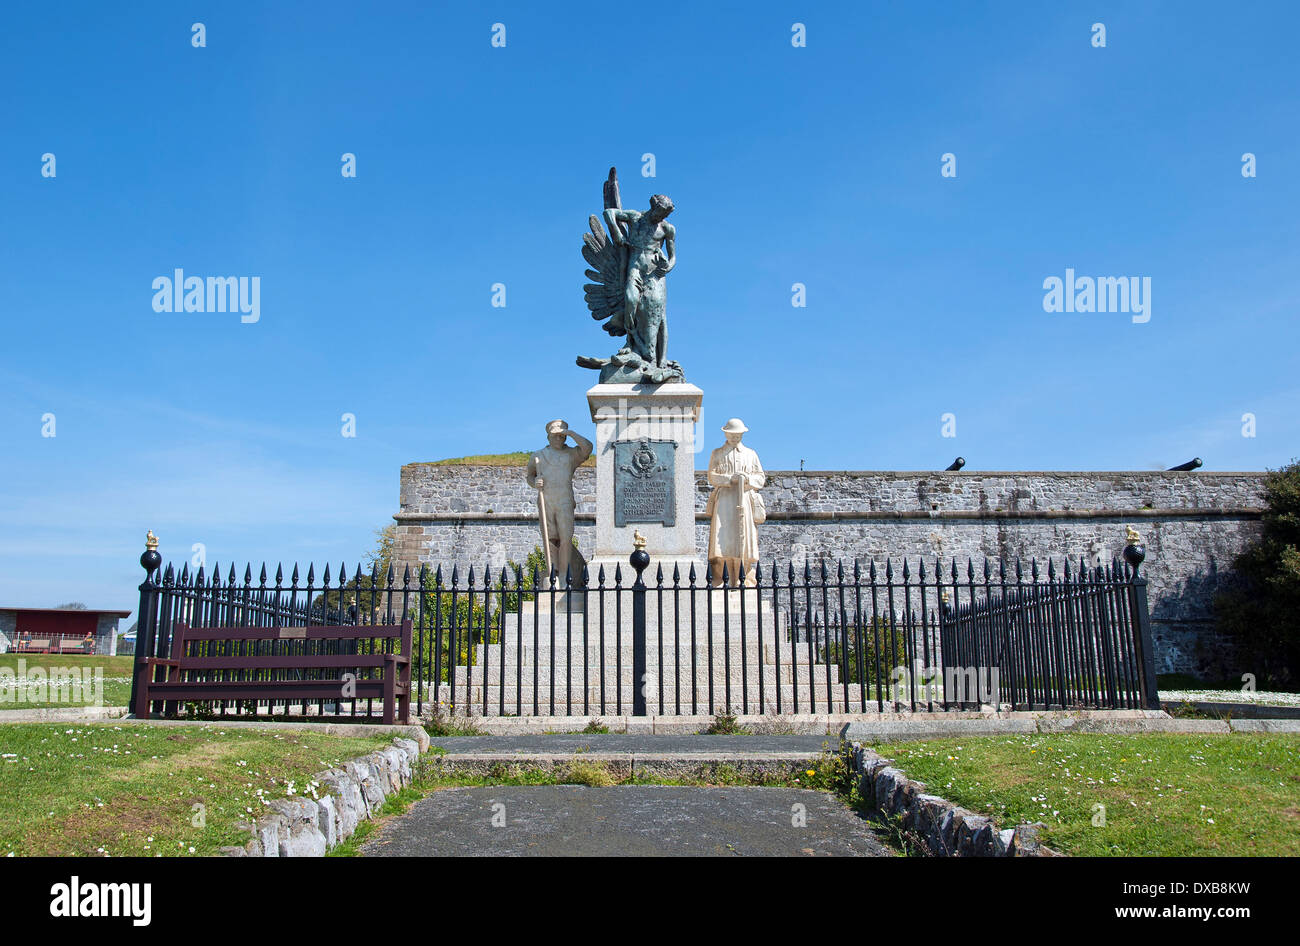 The Royal Marines memorial monument on Plymouth hoe in Devon, UK Stock Photo